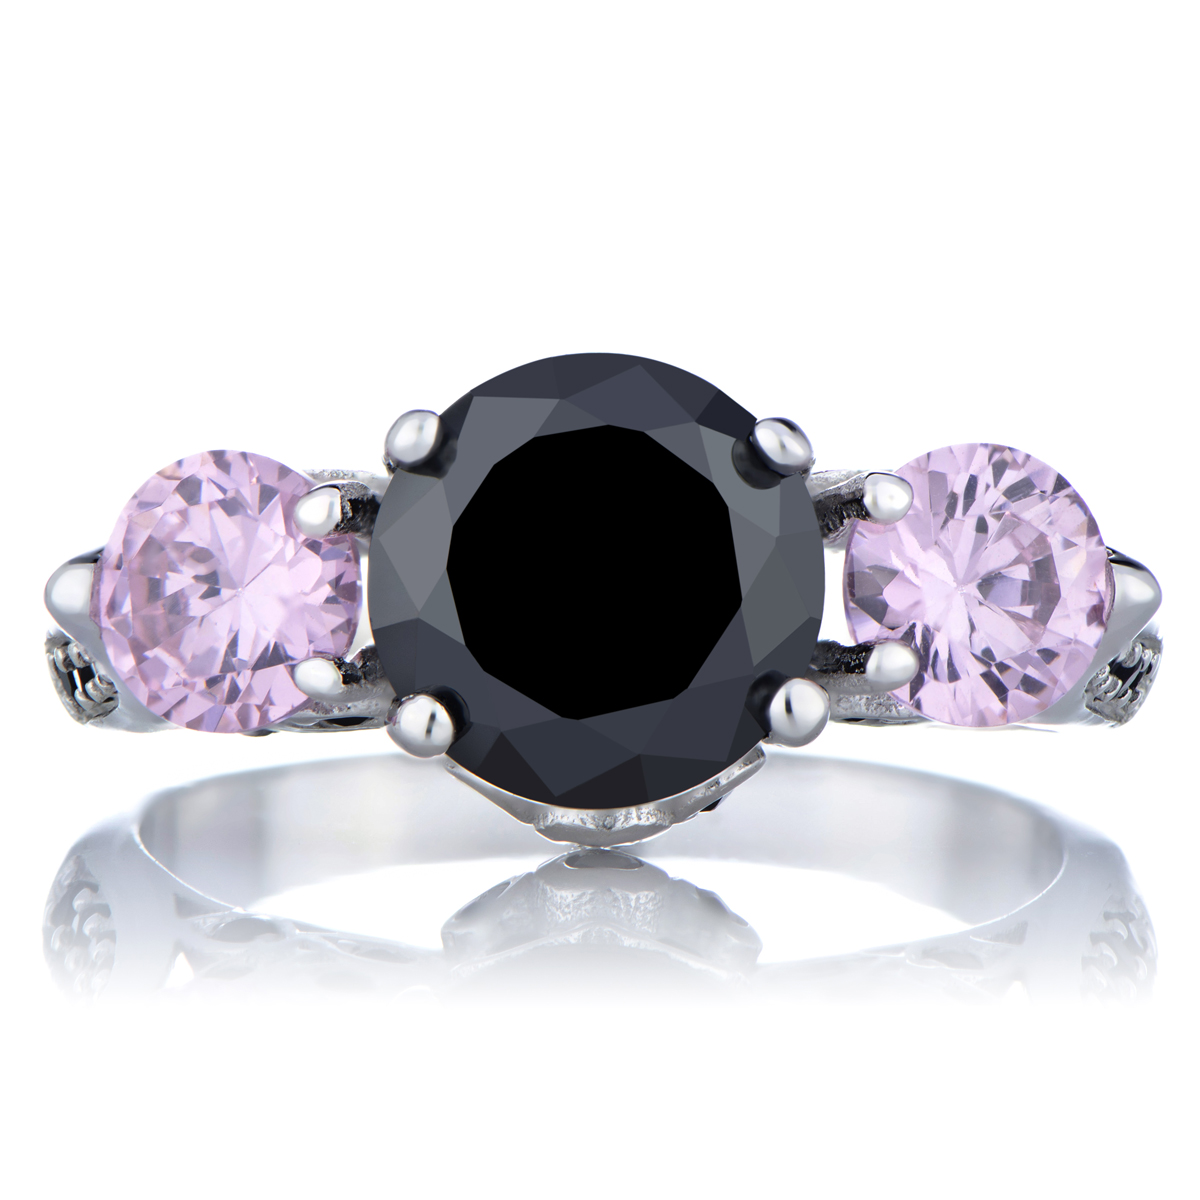 Piper's Pink And Black Cz Engagement Ring Roll Off Image To Close Zoom  Window